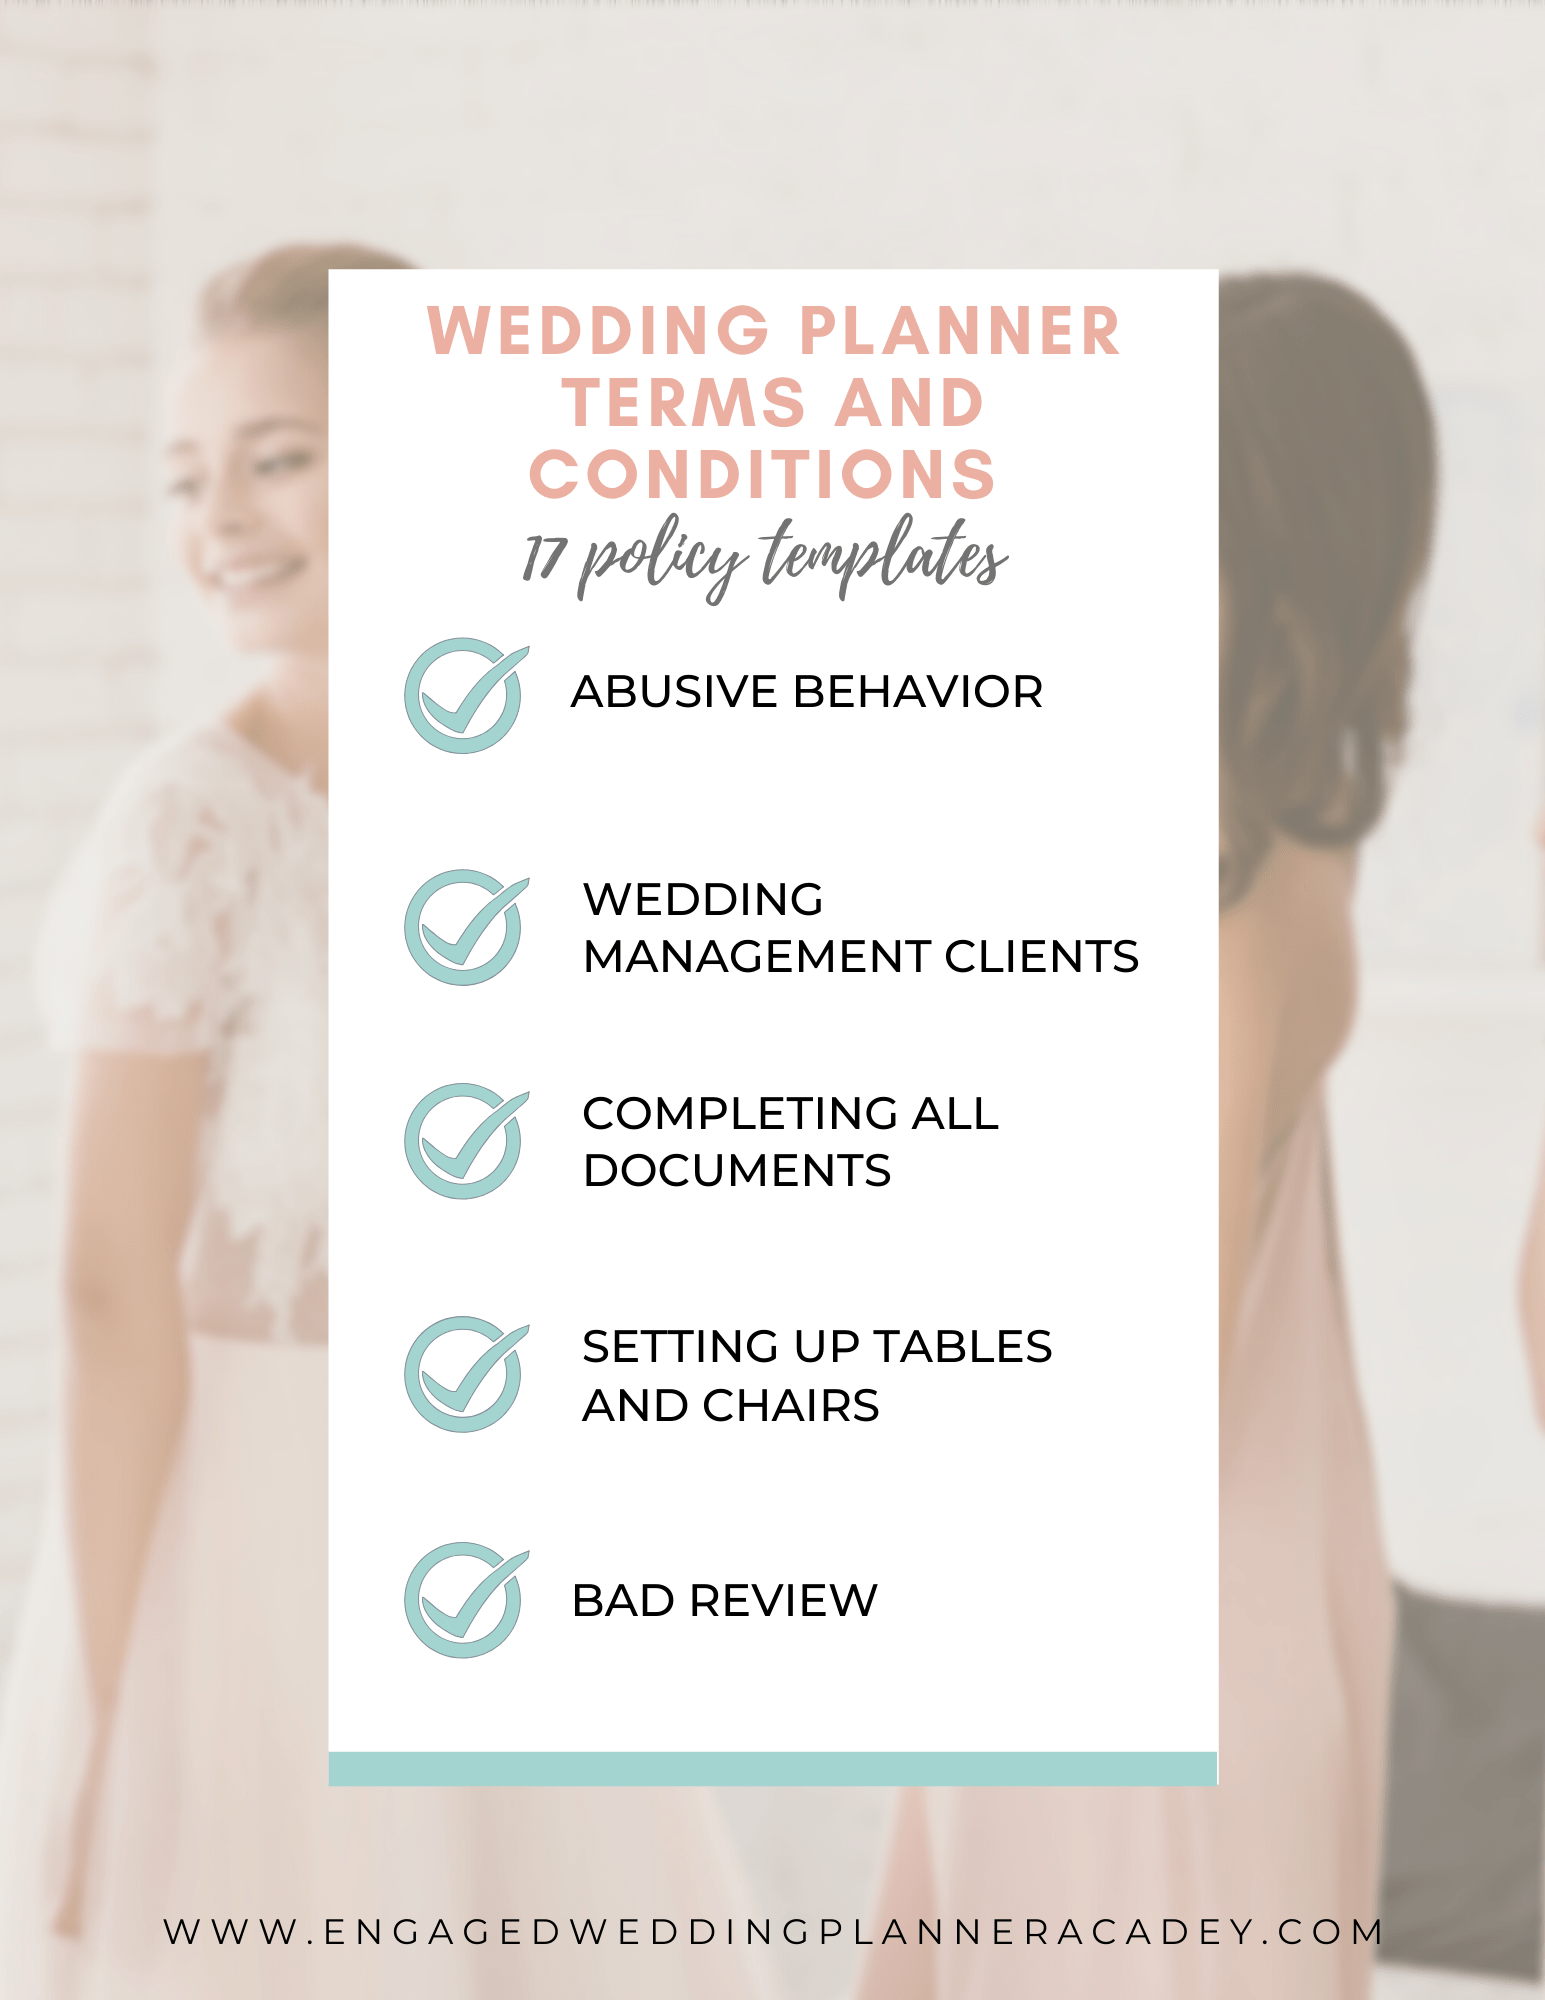 Pin on Being a Wedding Planner